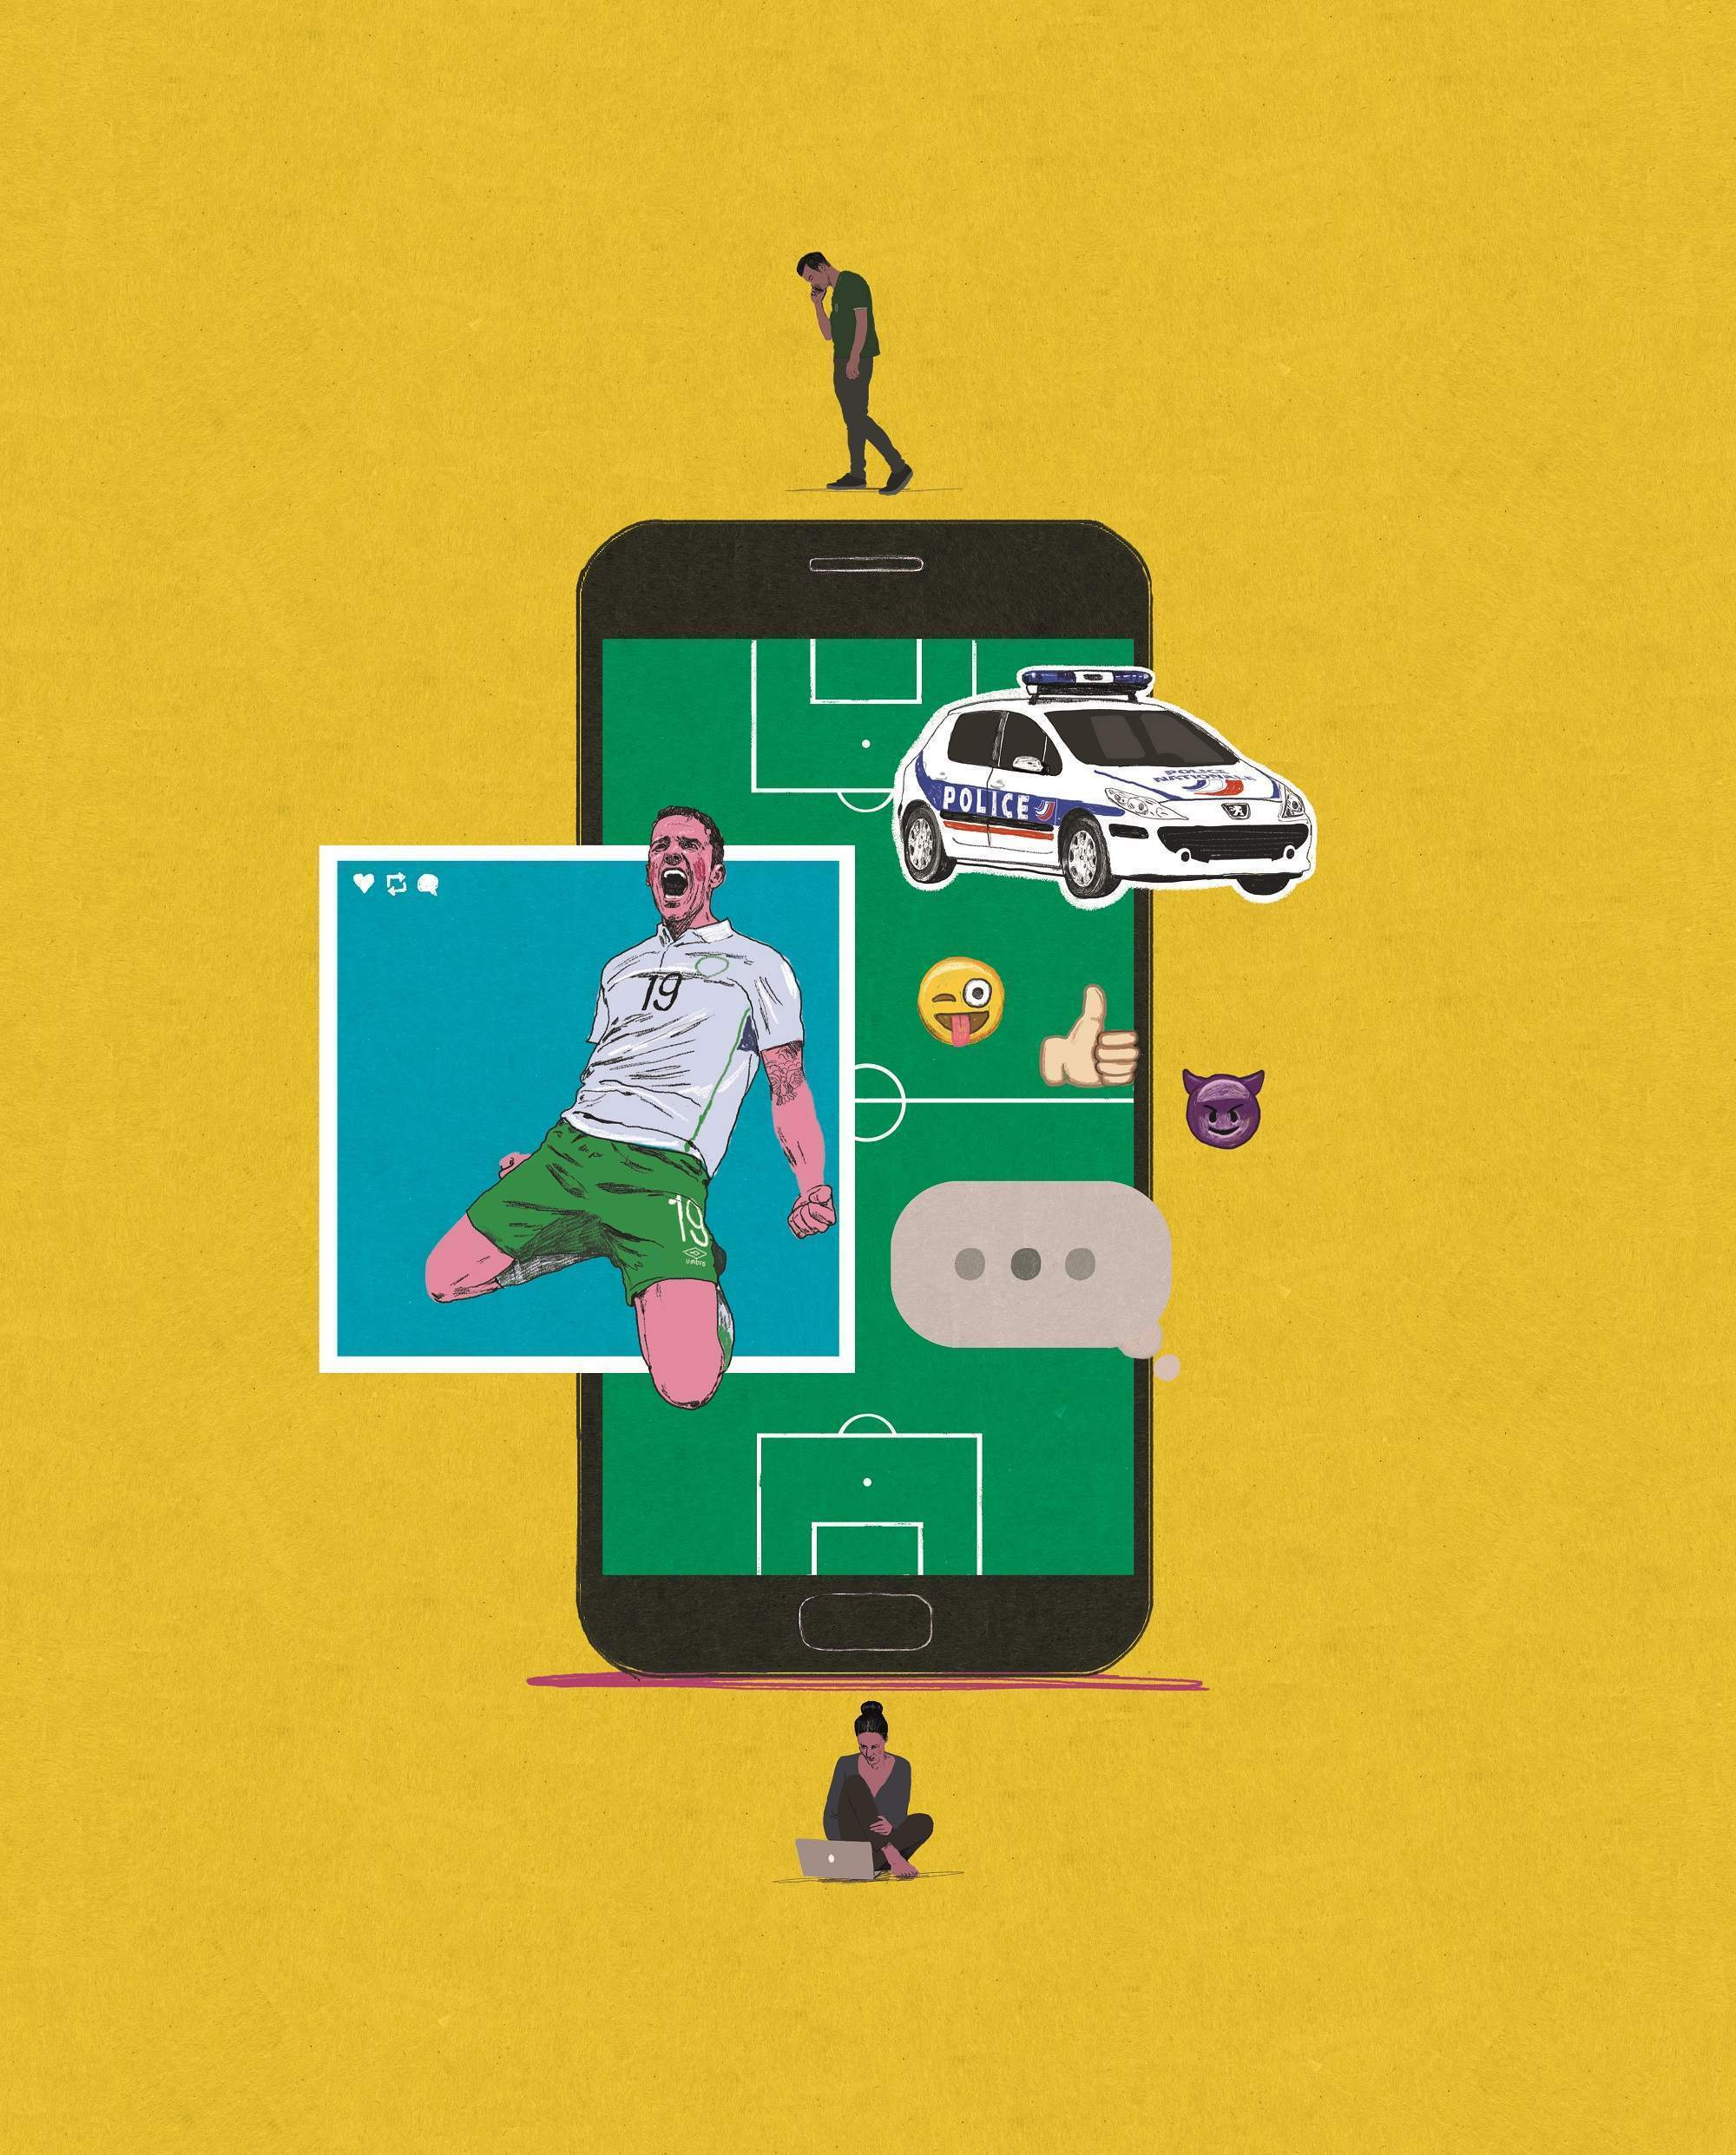 """""""Robbie Brady's astonishing late goal takes its place in our personal histories"""": A new short story by Sally Rooney"""